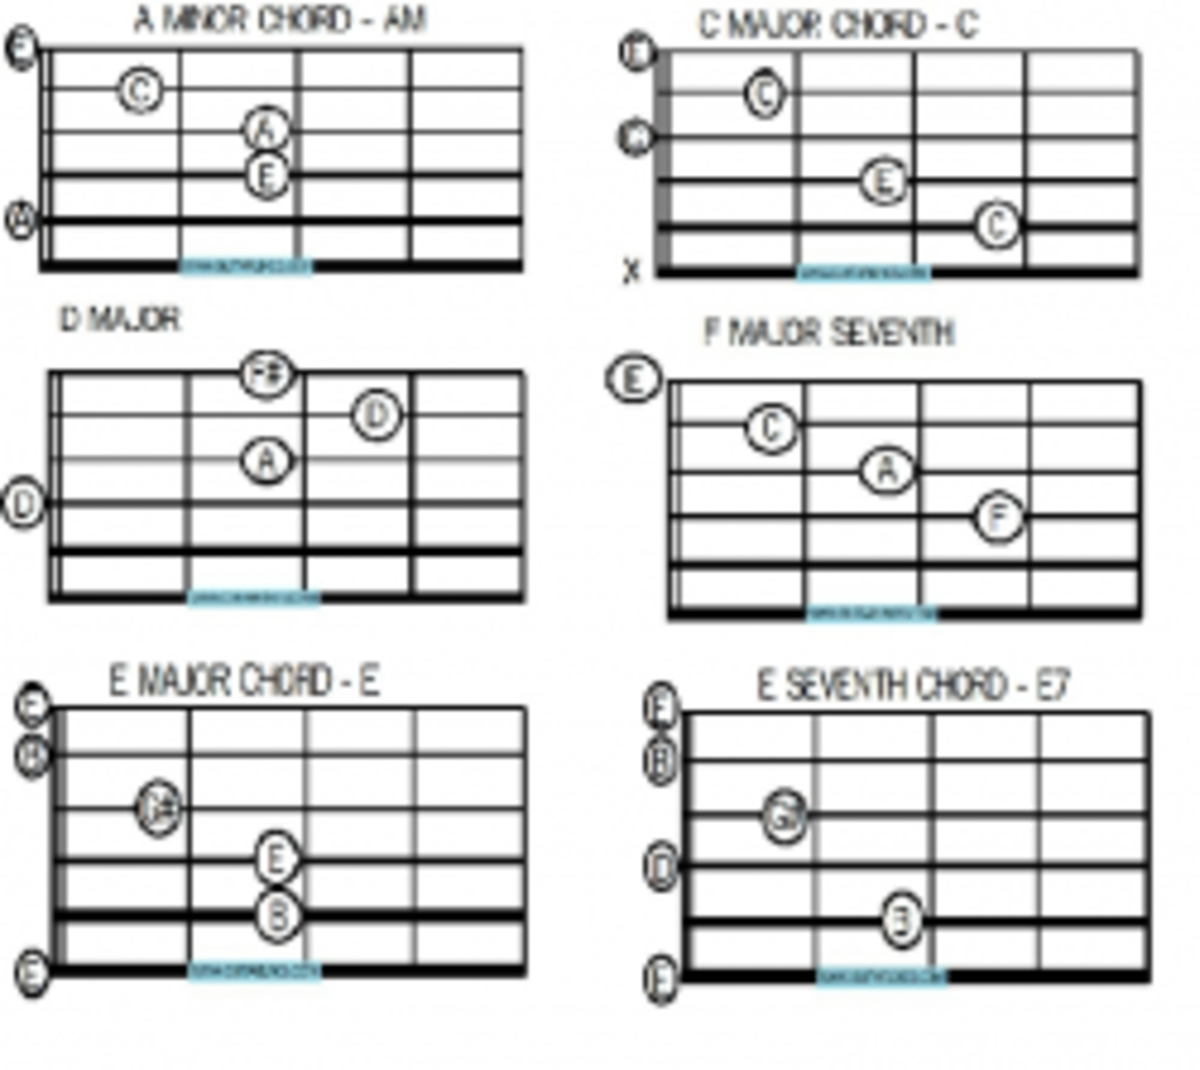 House of the Rising Sun Chords and Guitar TAB | Spinditty